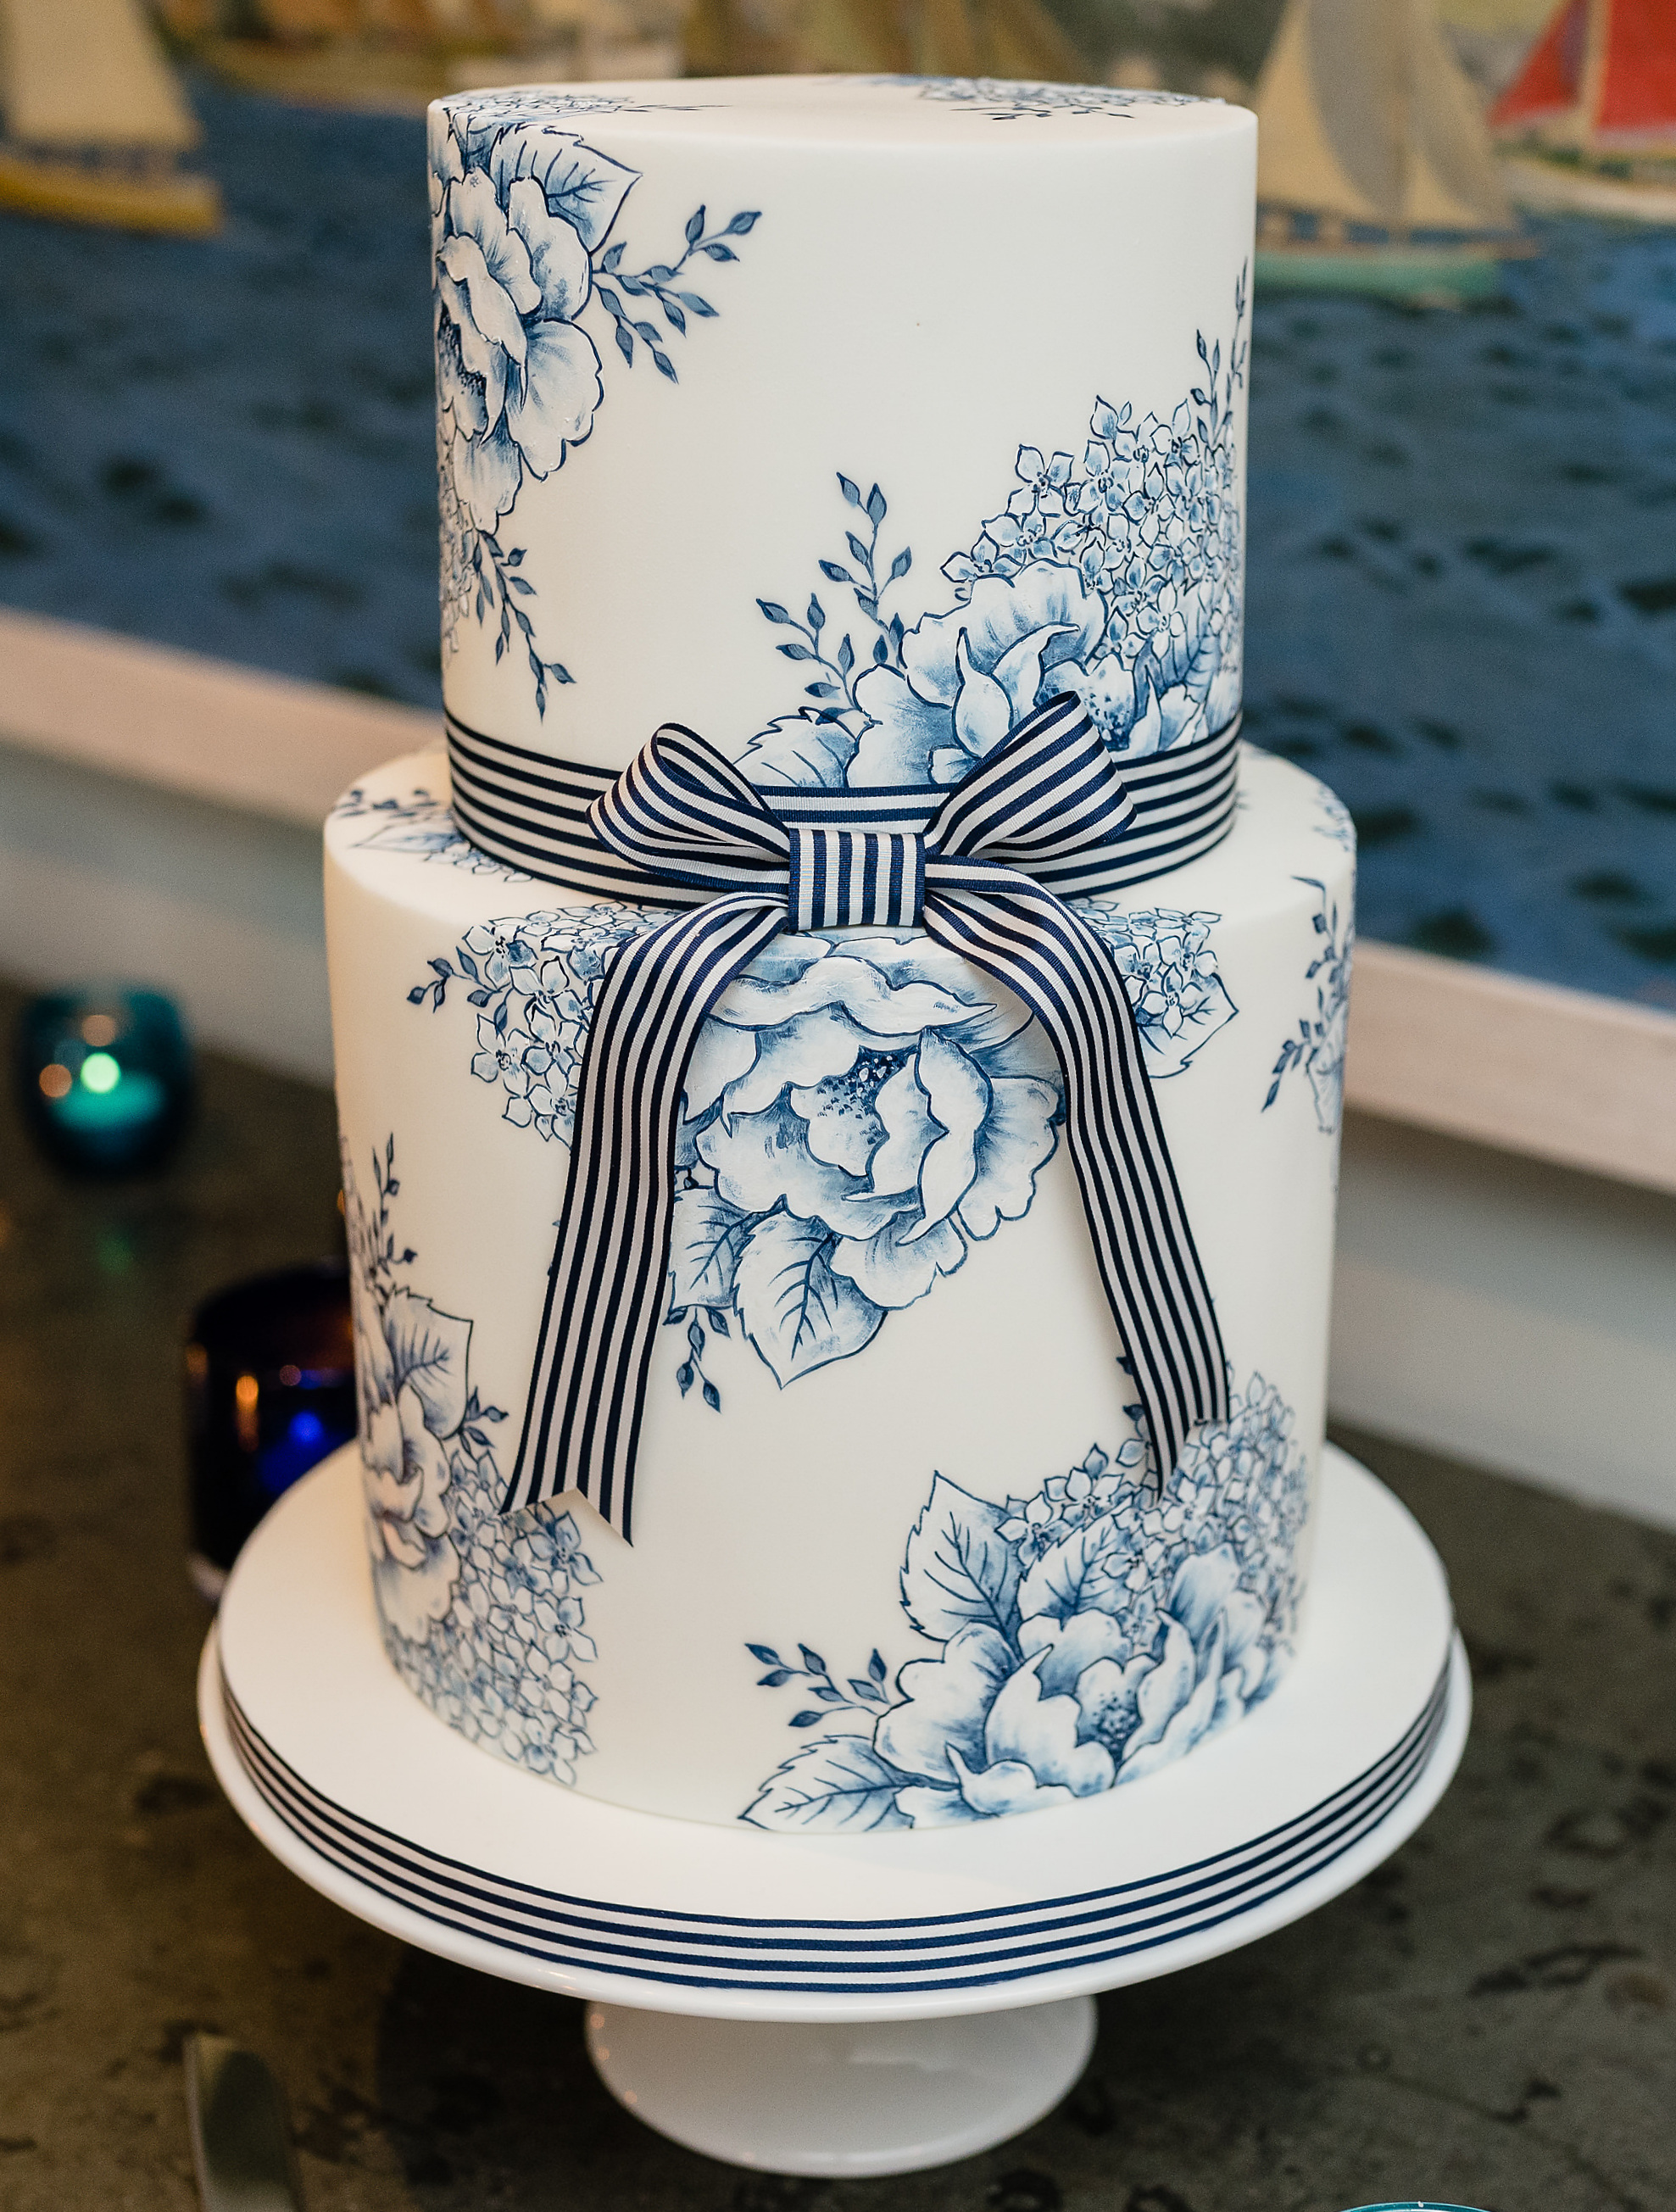 NAUTICAL STRIPES AND FLOWERS  A delicate hand painted design in blue and white enhanced by a bold striped ribbon. This design is a favorite for nautical themed weddings and can be recreated over any number of tiers.